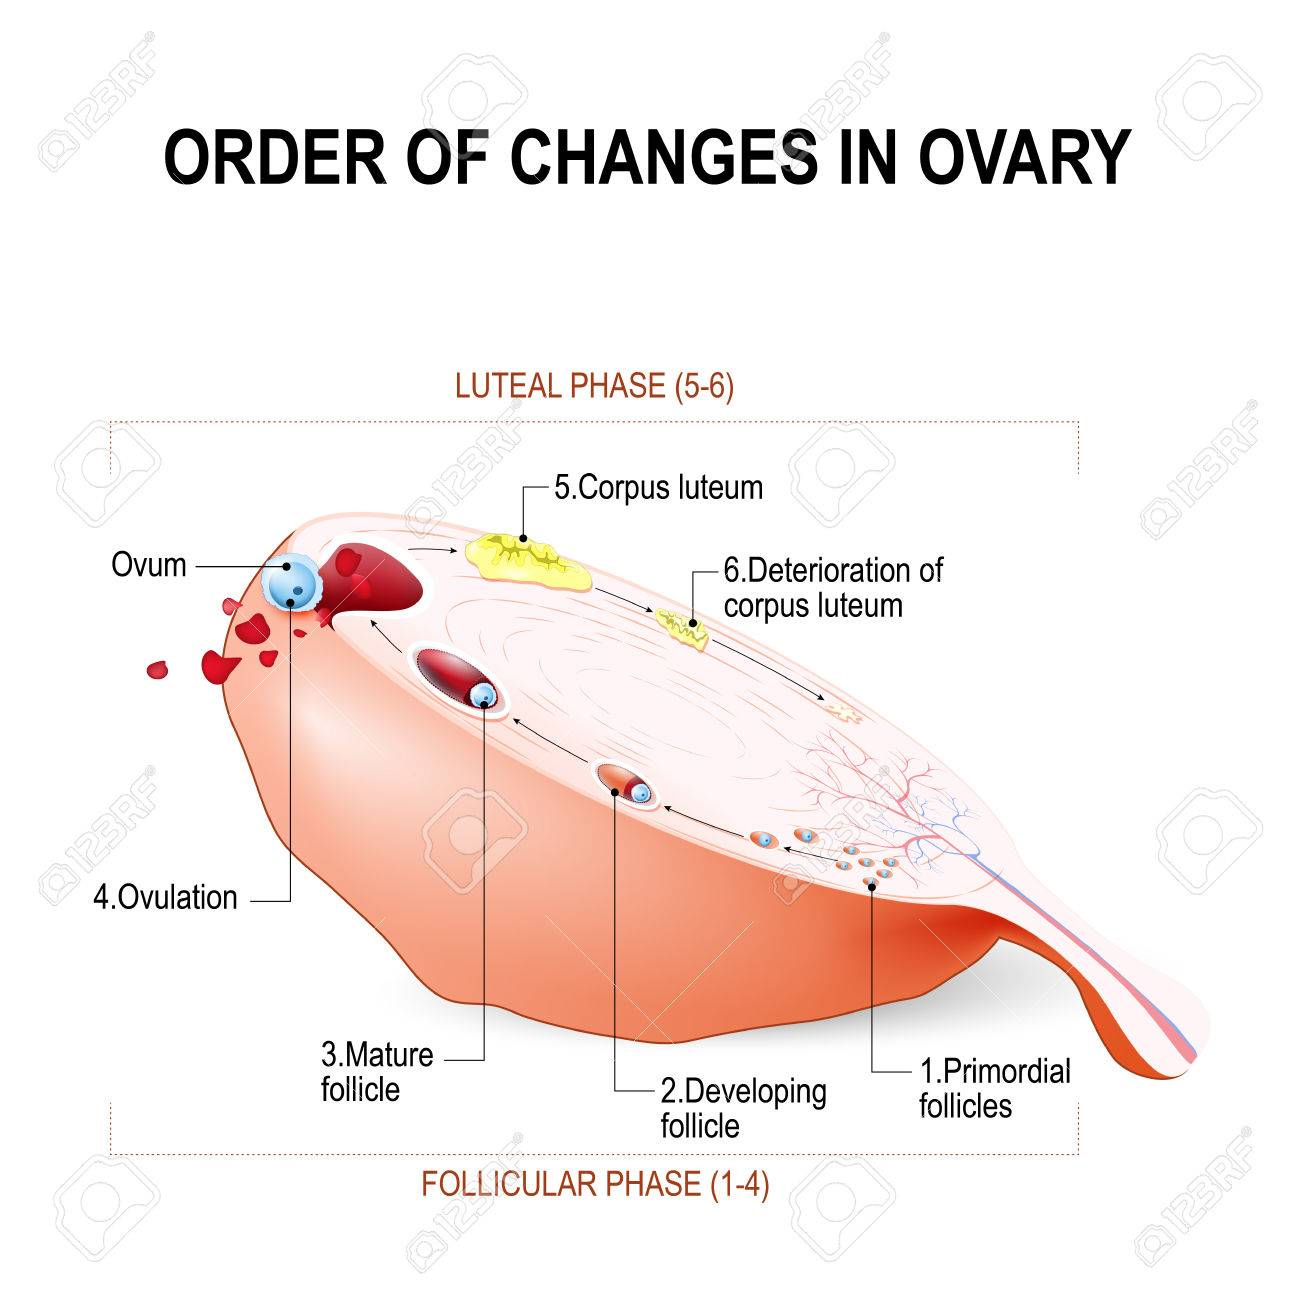 Order Of Changes In Ovary From Developing Follicle To Ovulation